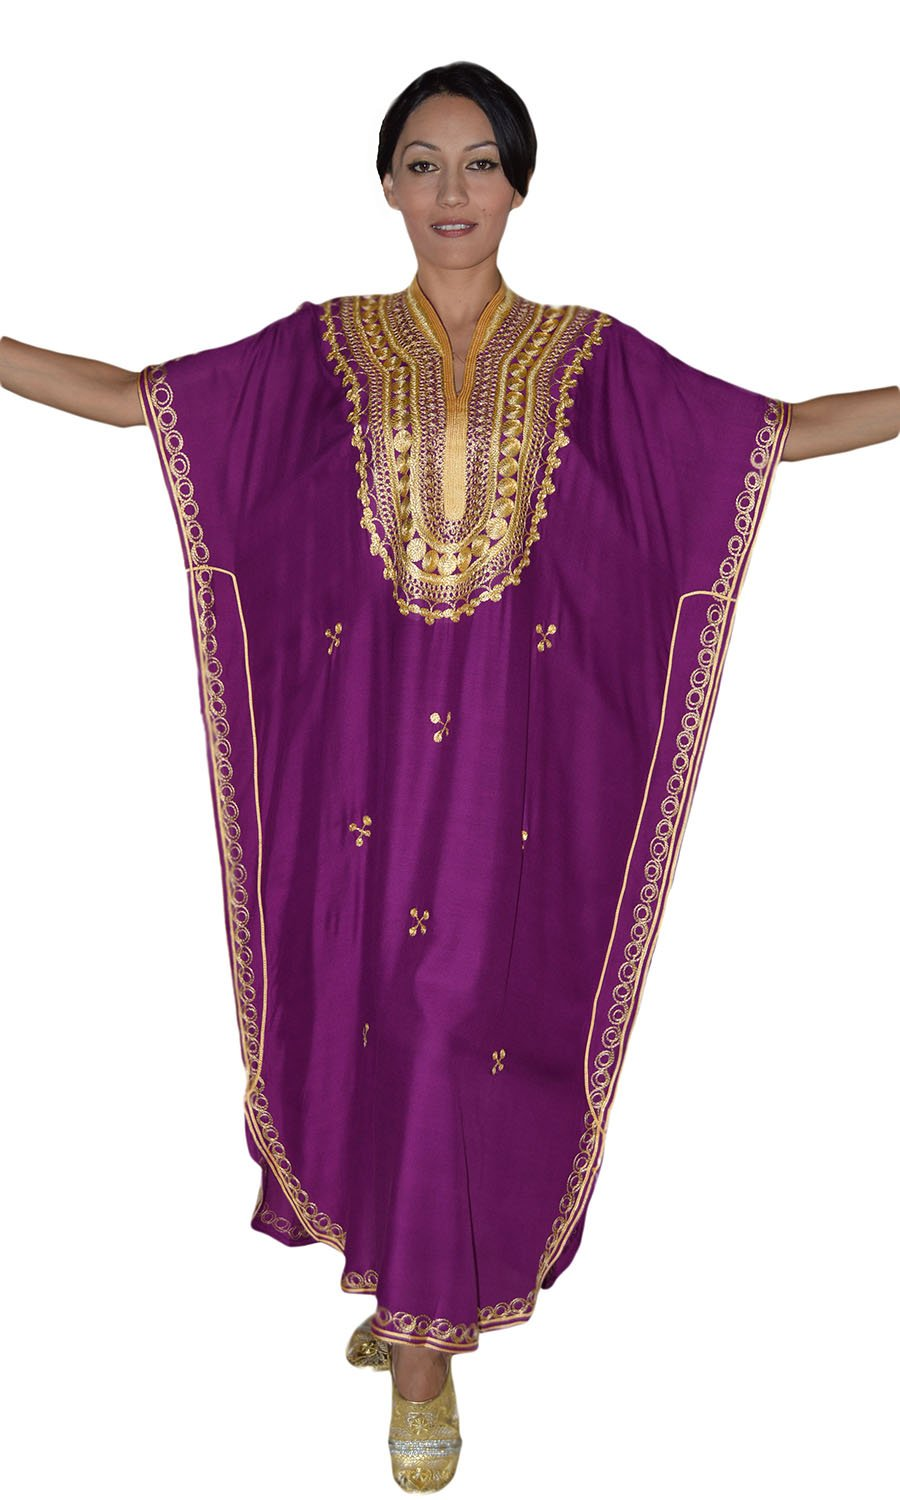 Moroccan Caftan Hand Made Top Quality Breathable Cotton with Gold Hand Embroidery Long Lenght Magenta